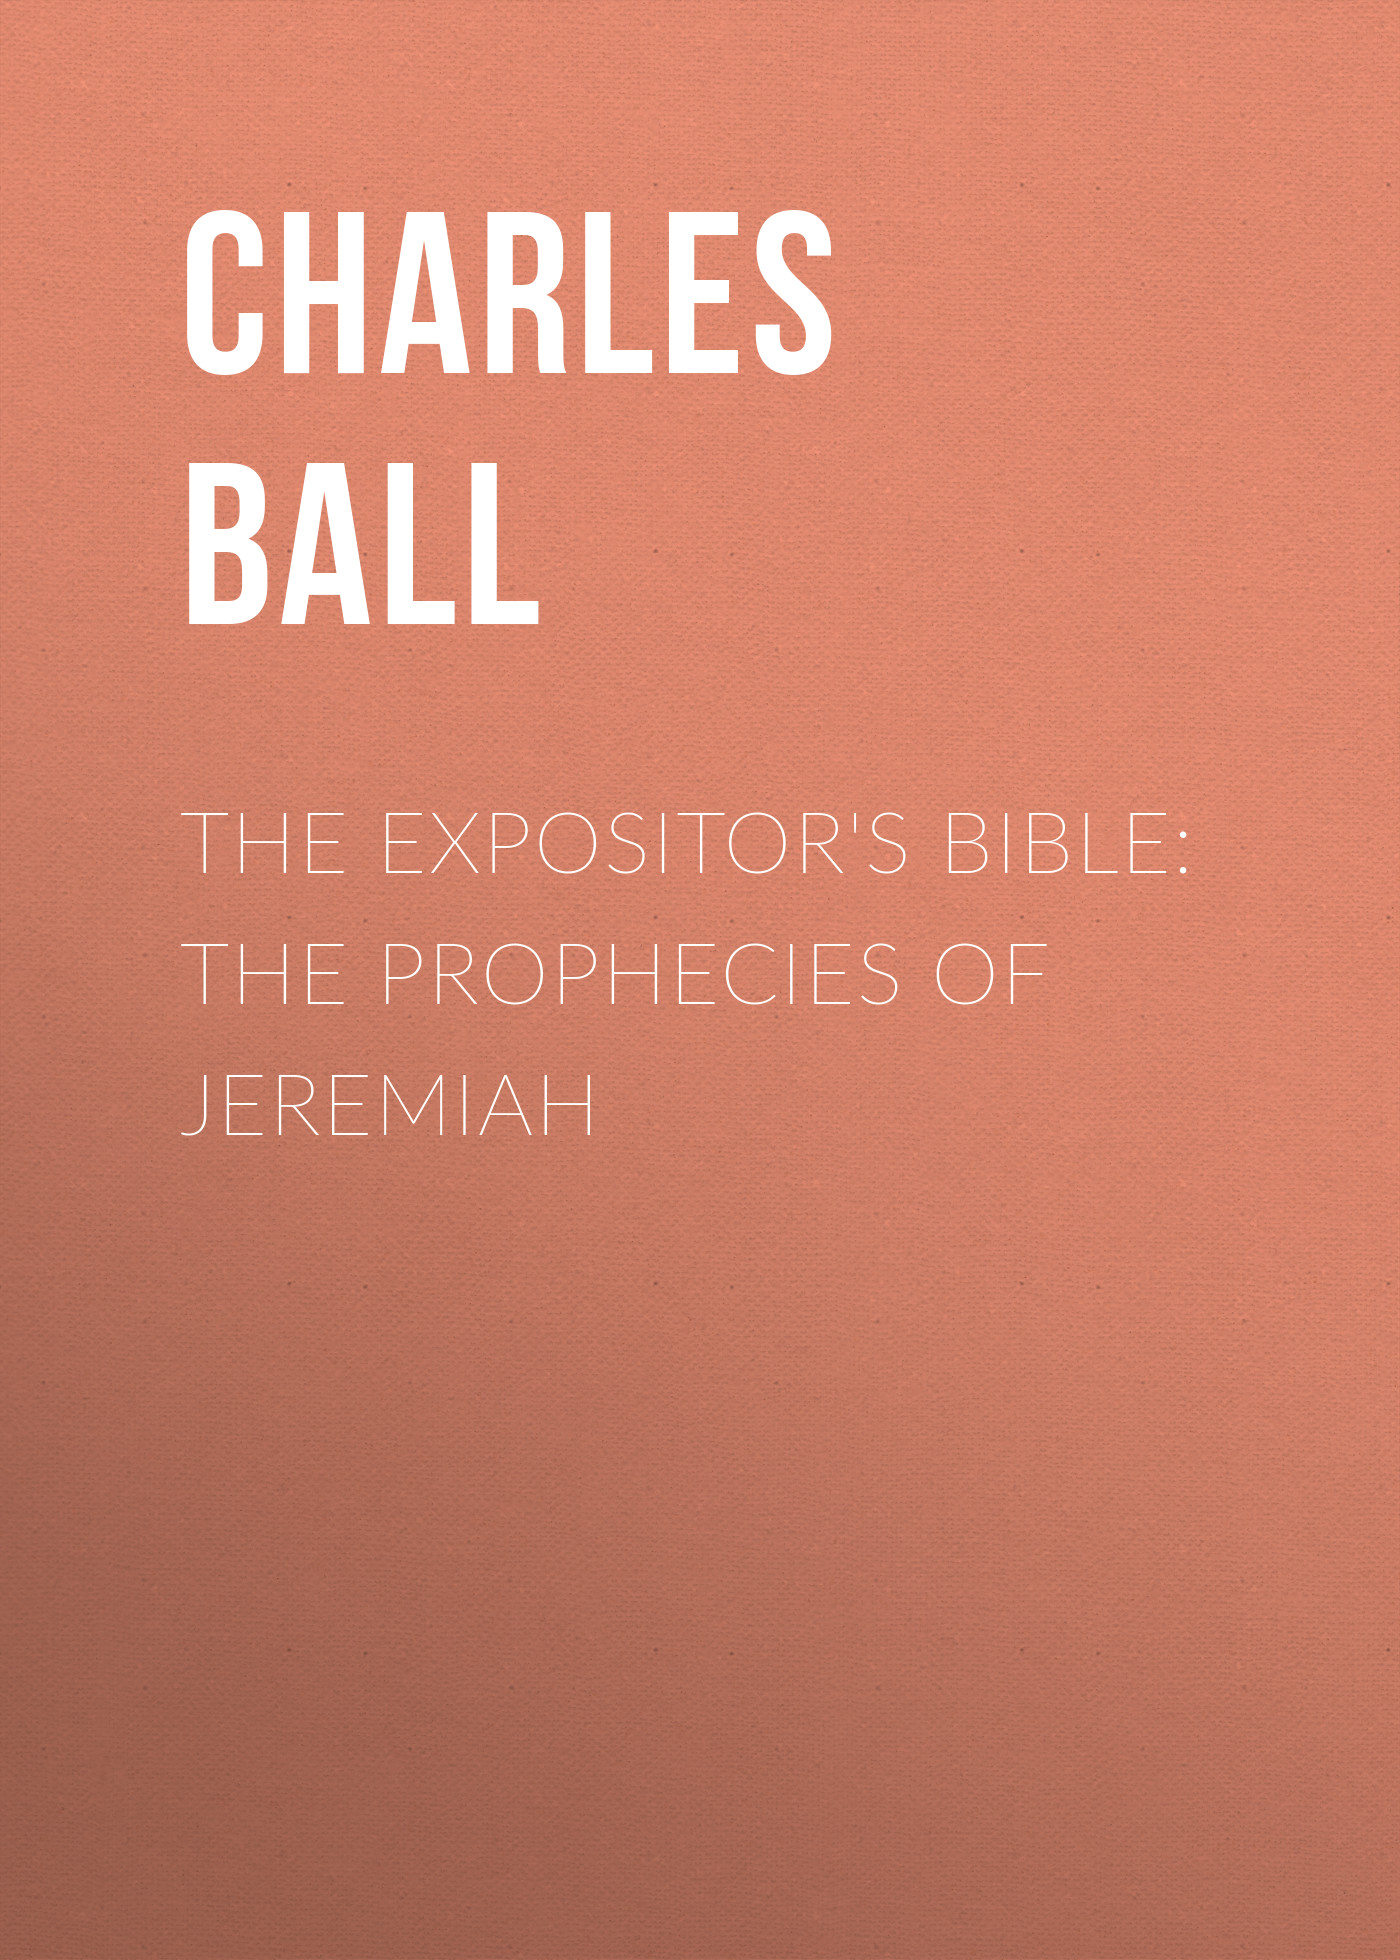 Ball Charles James The Expositor's Bible: The Prophecies of Jeremiah edwards thomas charles the expositor s bible the epistle to the hebrews